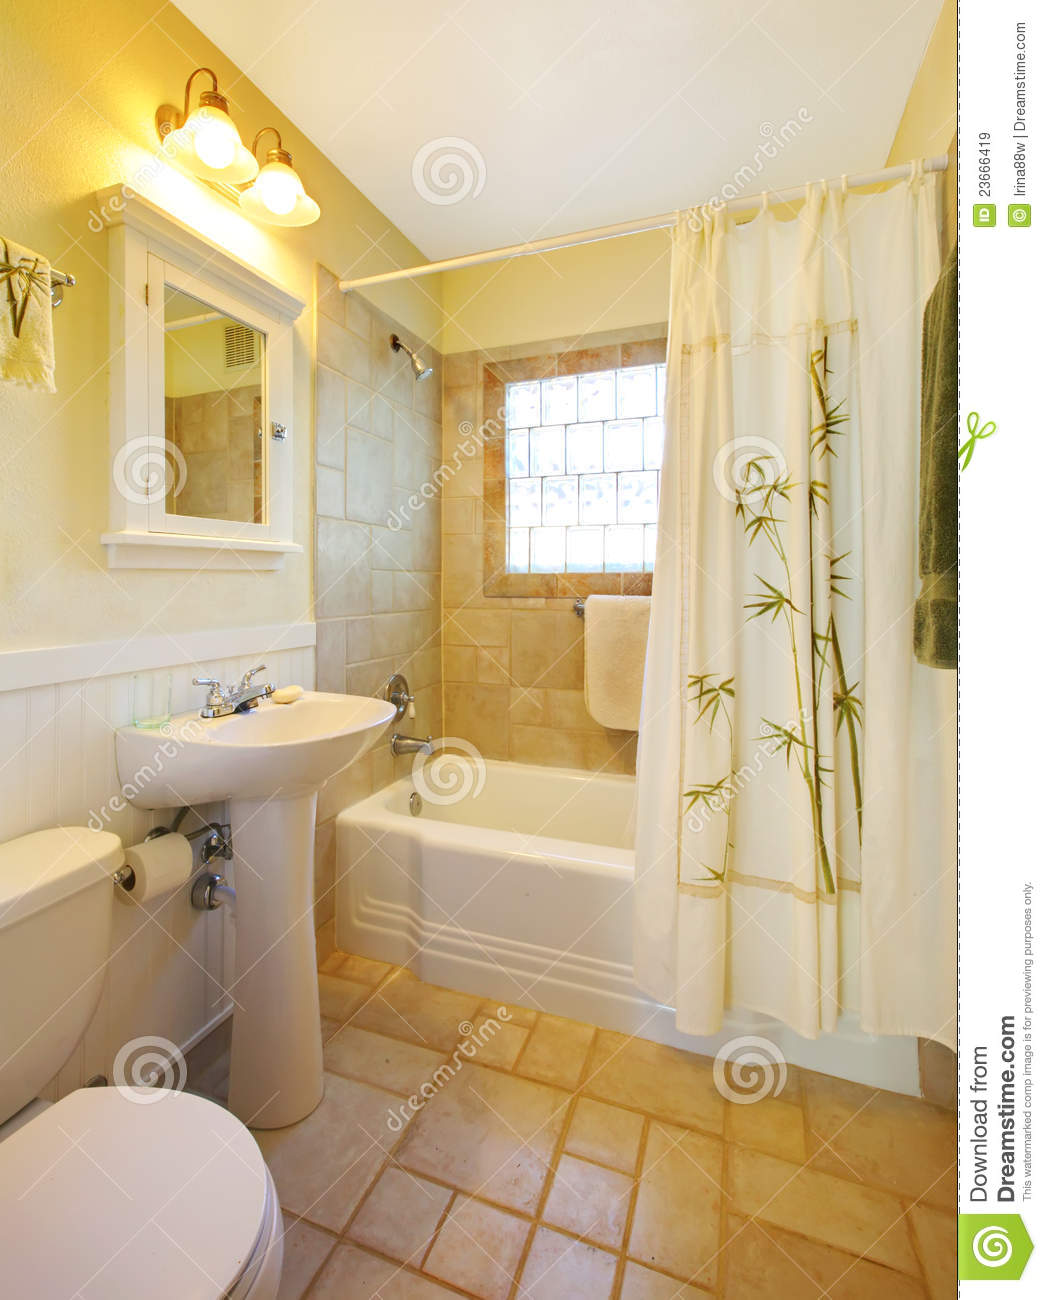 Salle De Bain Petite Douche : Beige and White Small Bathrooms